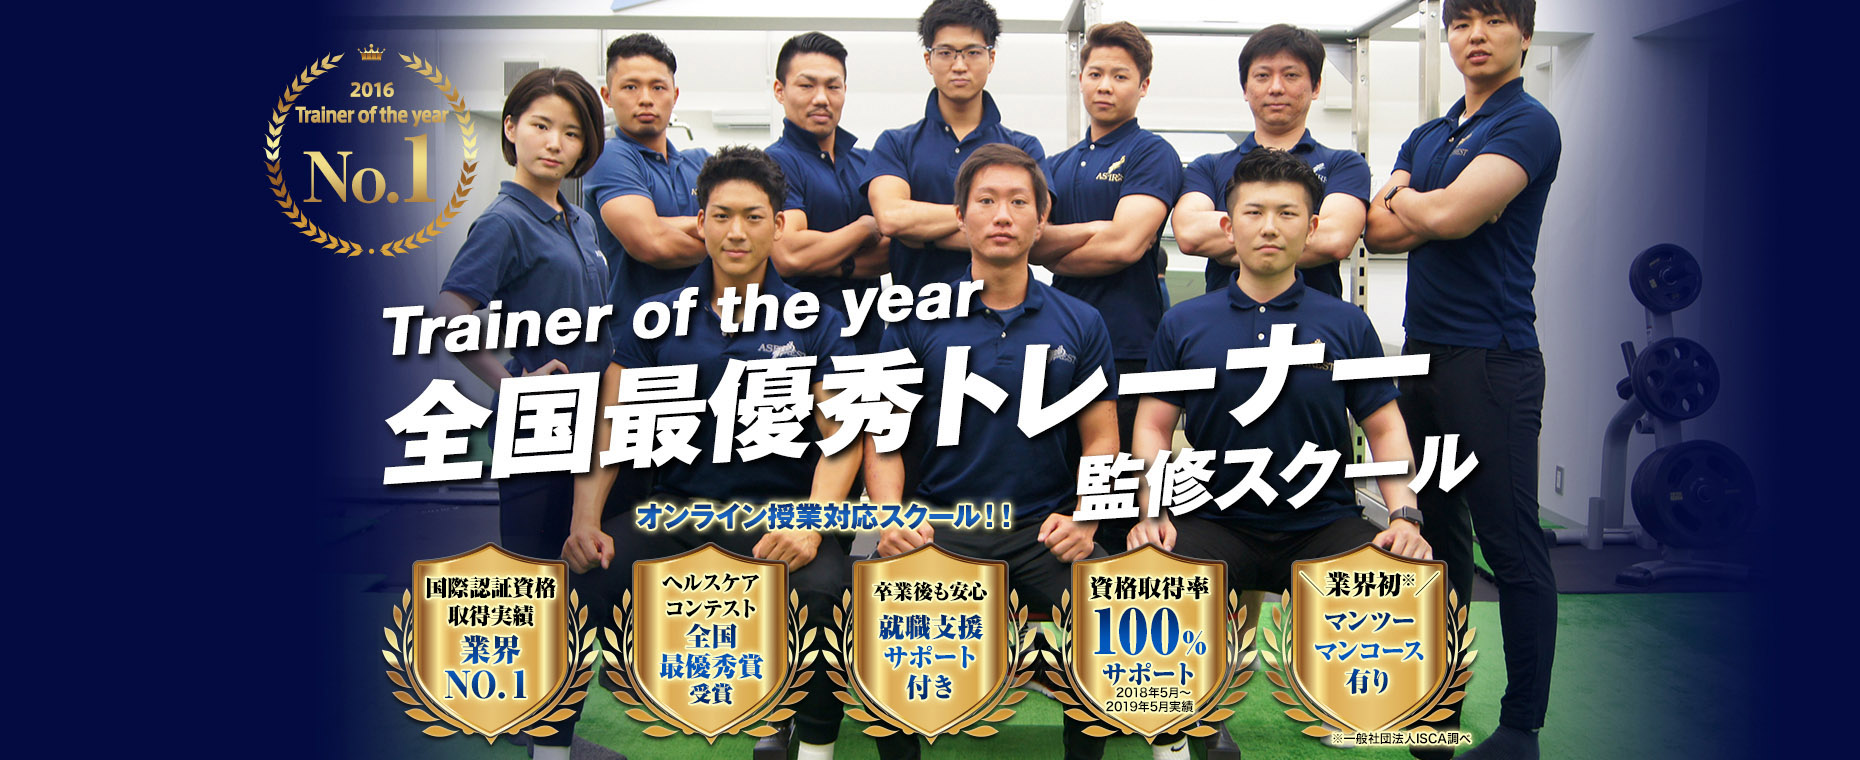 Trainer of the year 全国最優秀トレーナー監修スクール